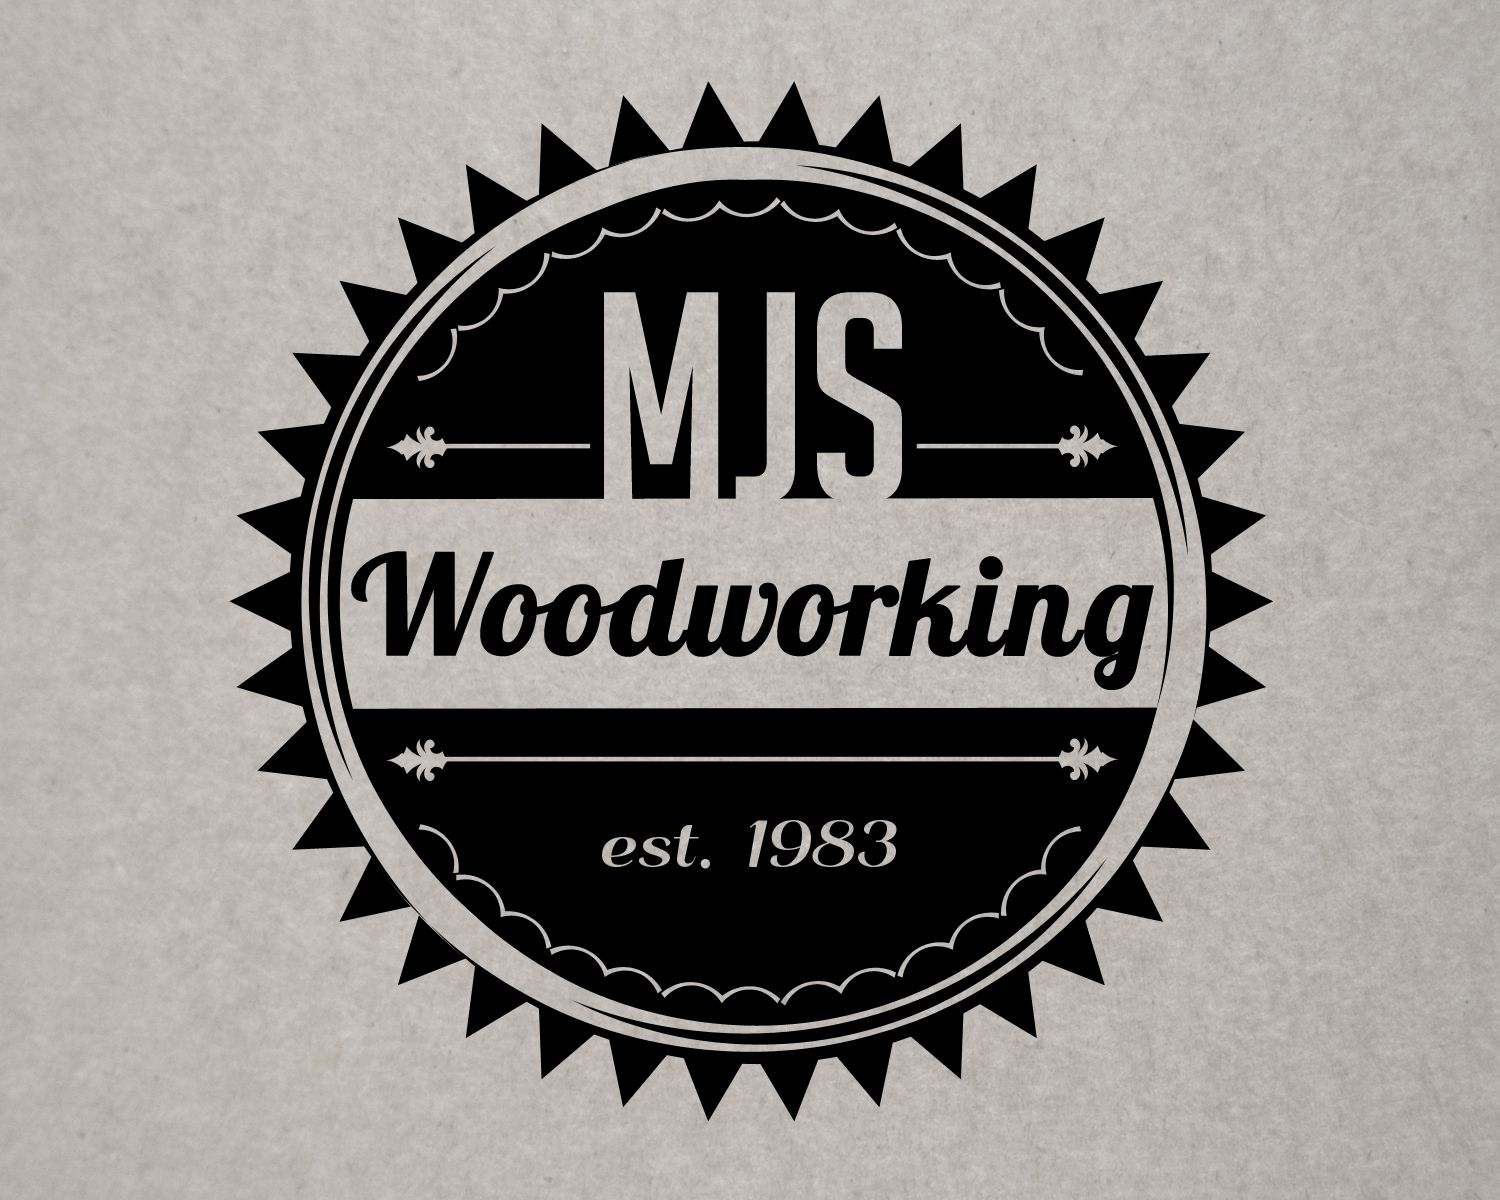 Vintage Styled The Text Could Be Hard To Read At Small Sized Though Logos Woodworking Logo